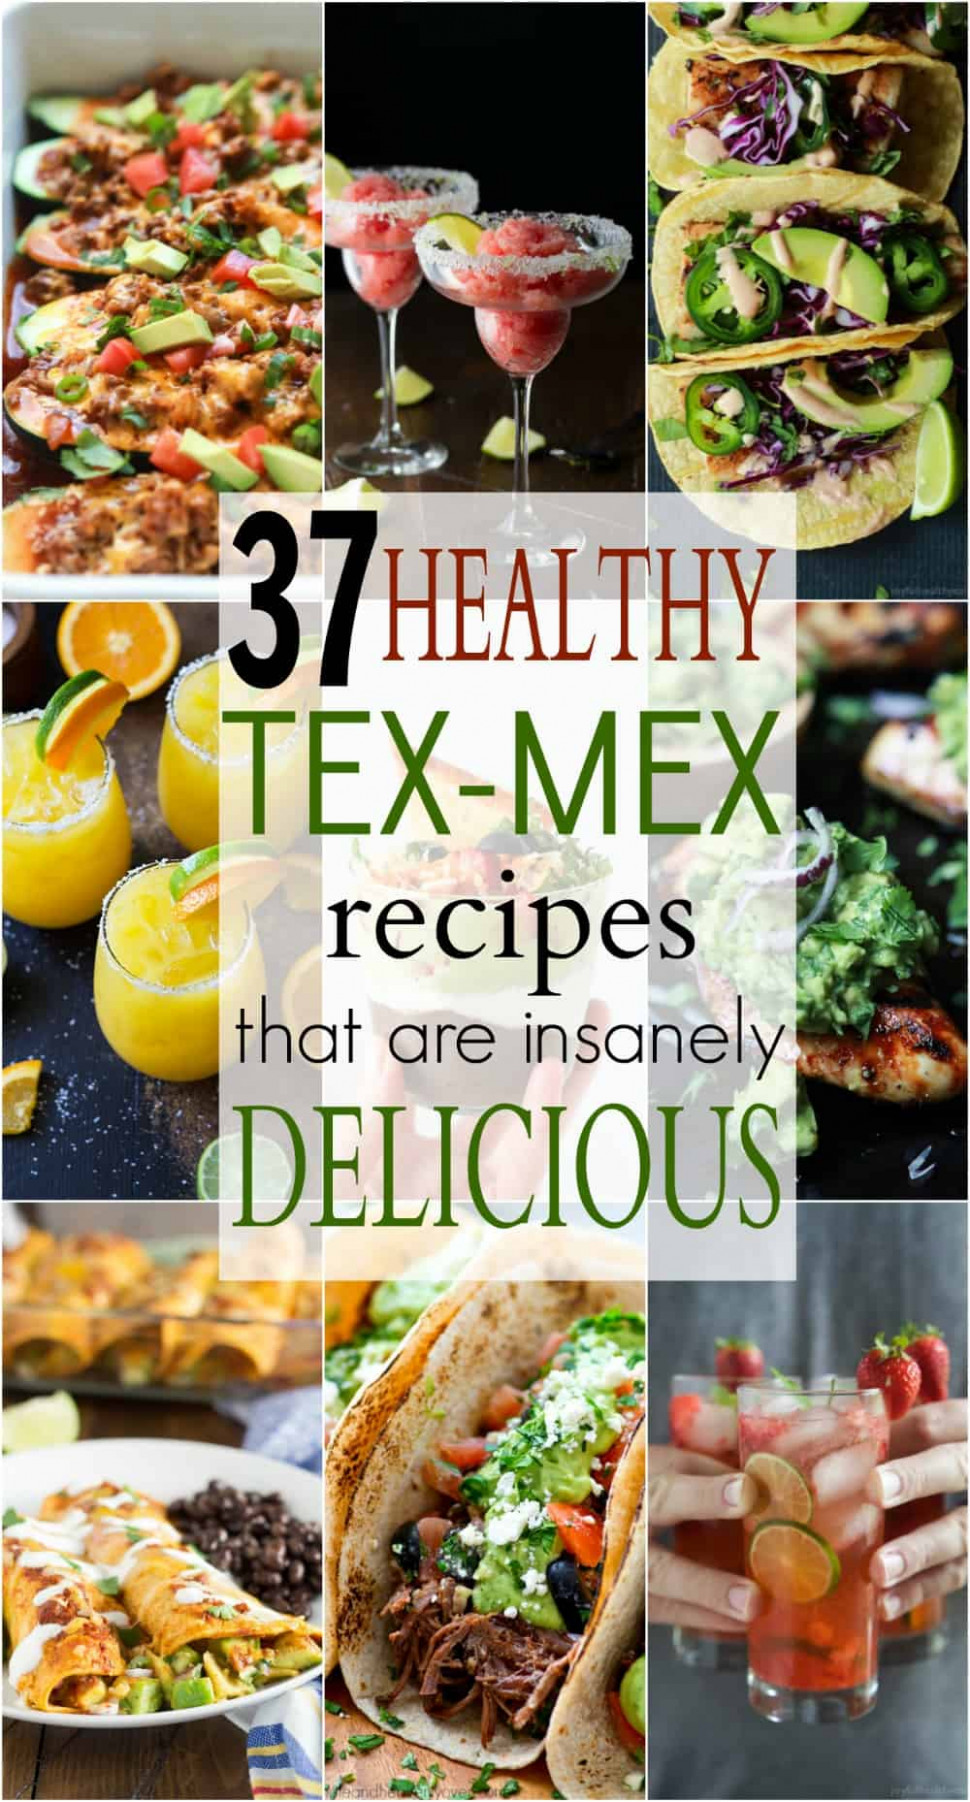 15 Healthy Tex-Mex Recipes that are Insanely Delicious ..